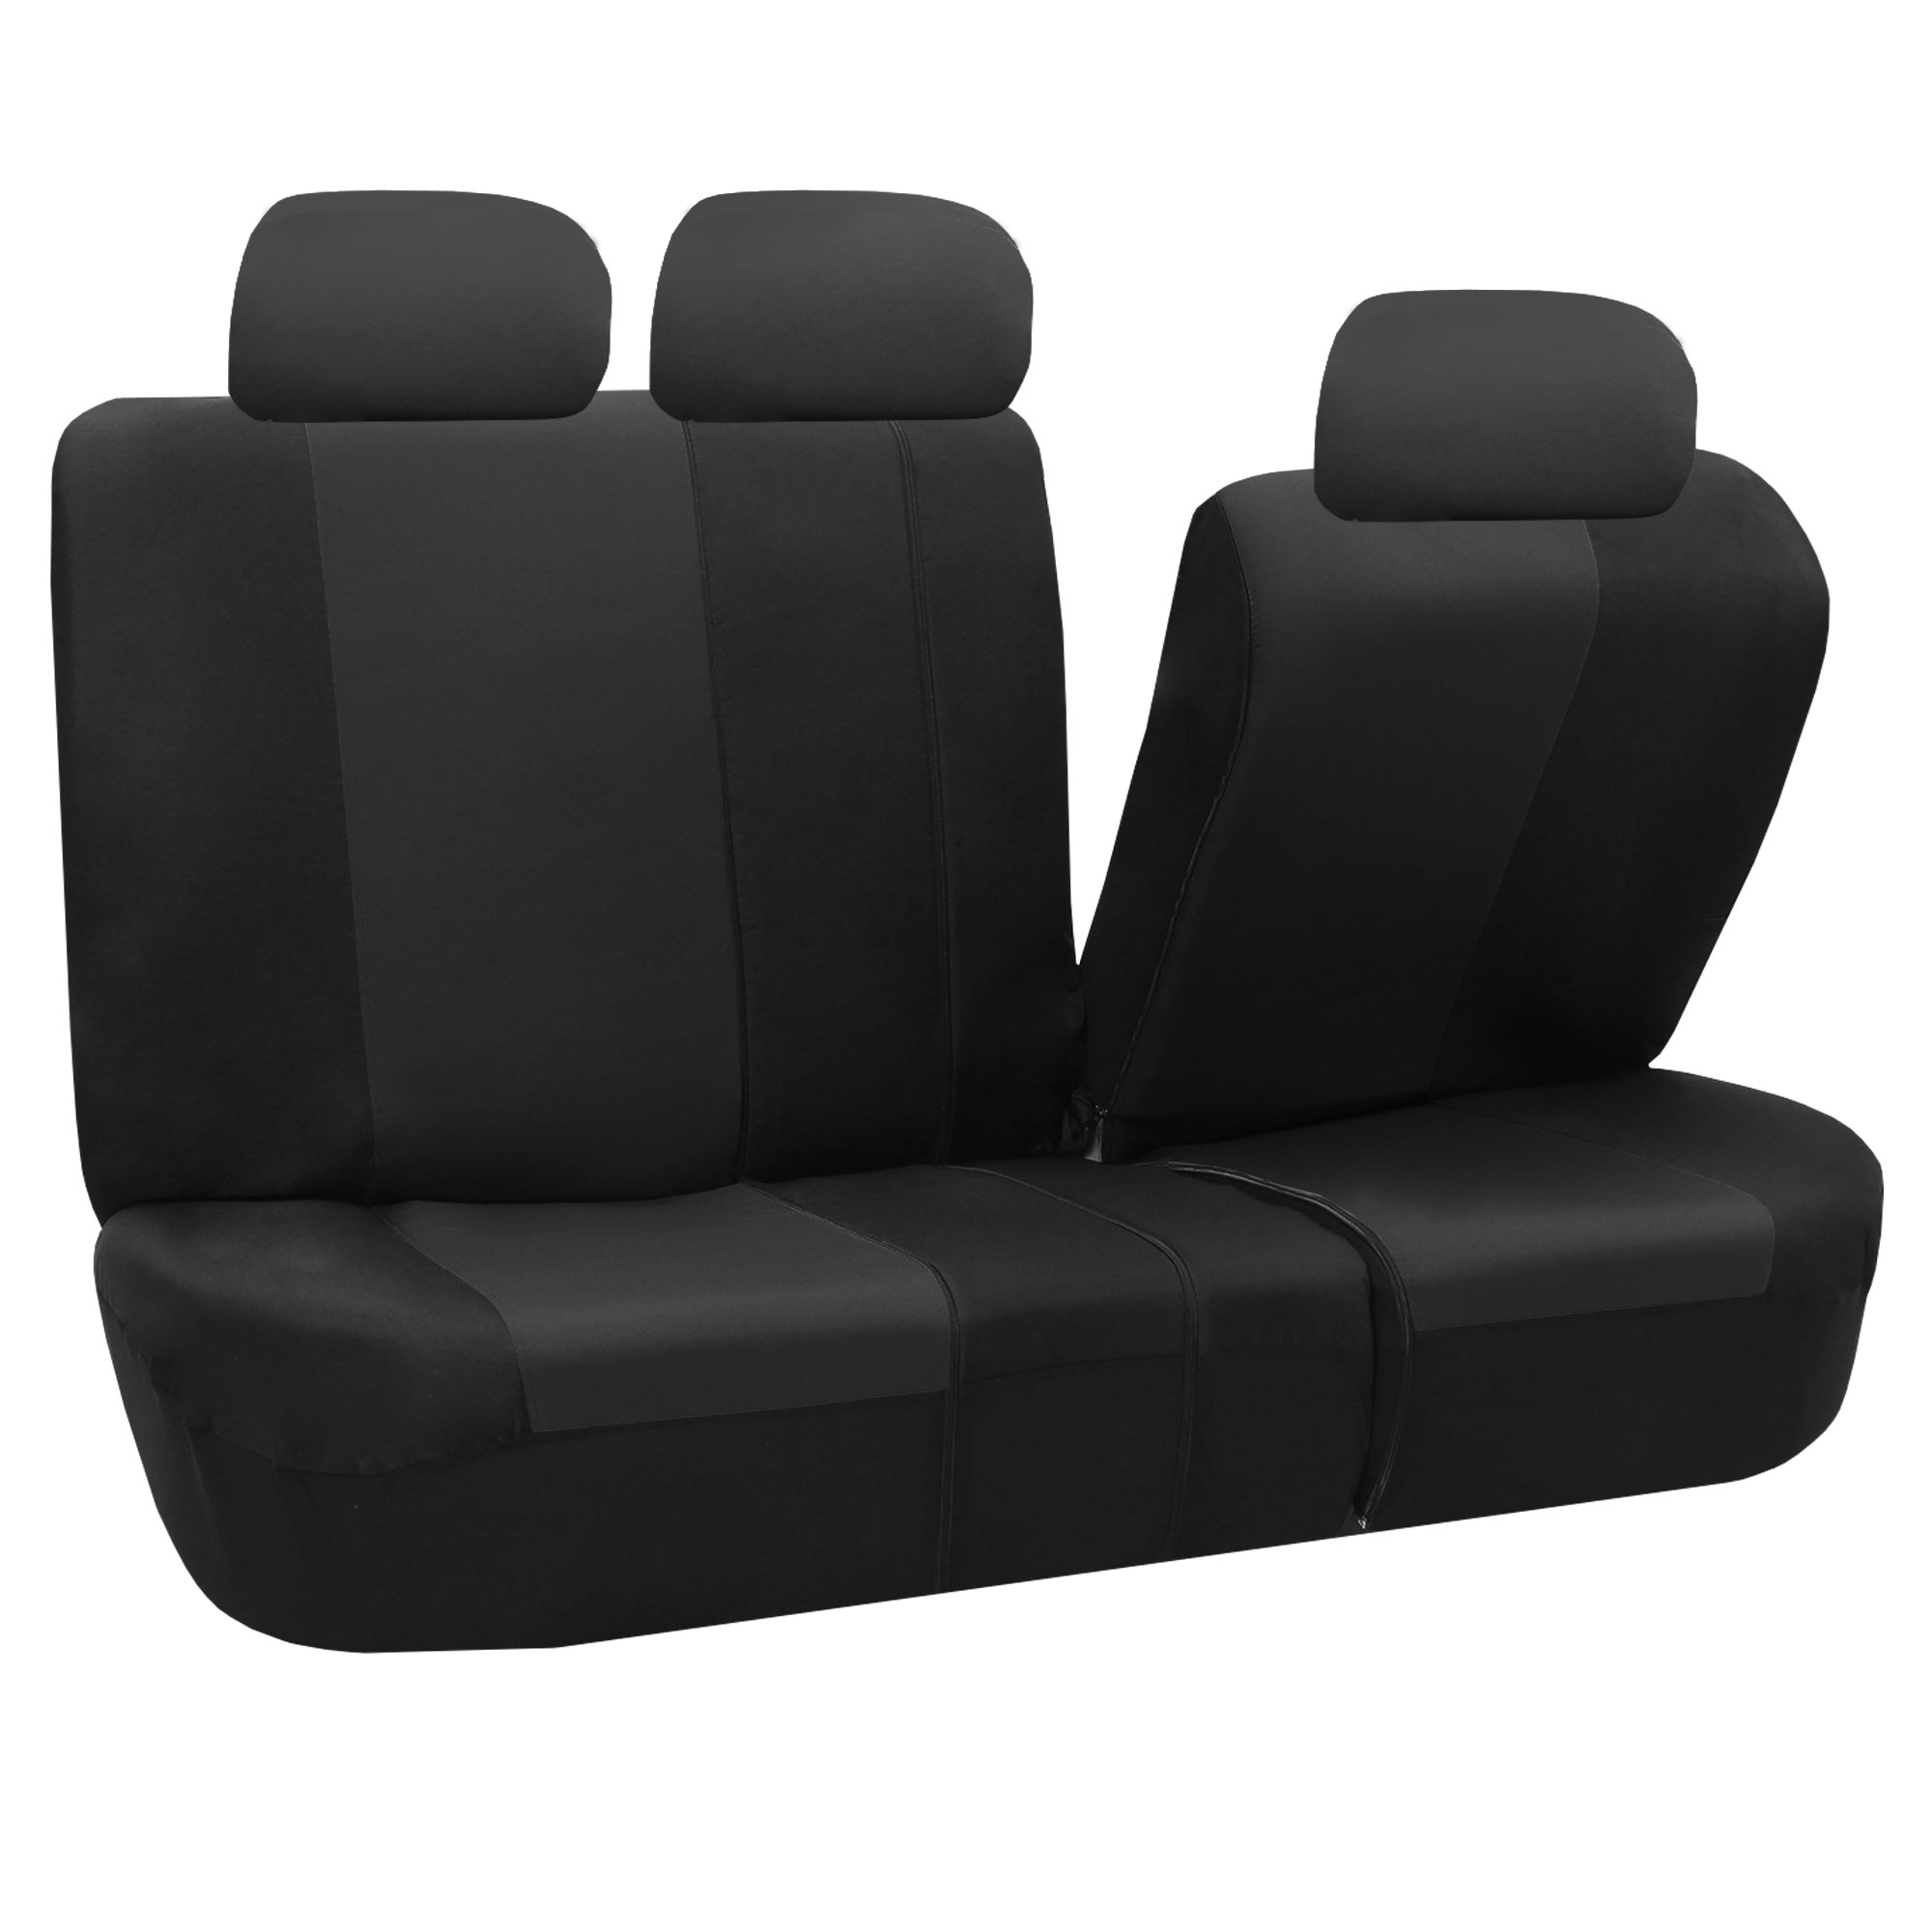 classic khaki car seat covers black with steering wheel cover ebay. Black Bedroom Furniture Sets. Home Design Ideas